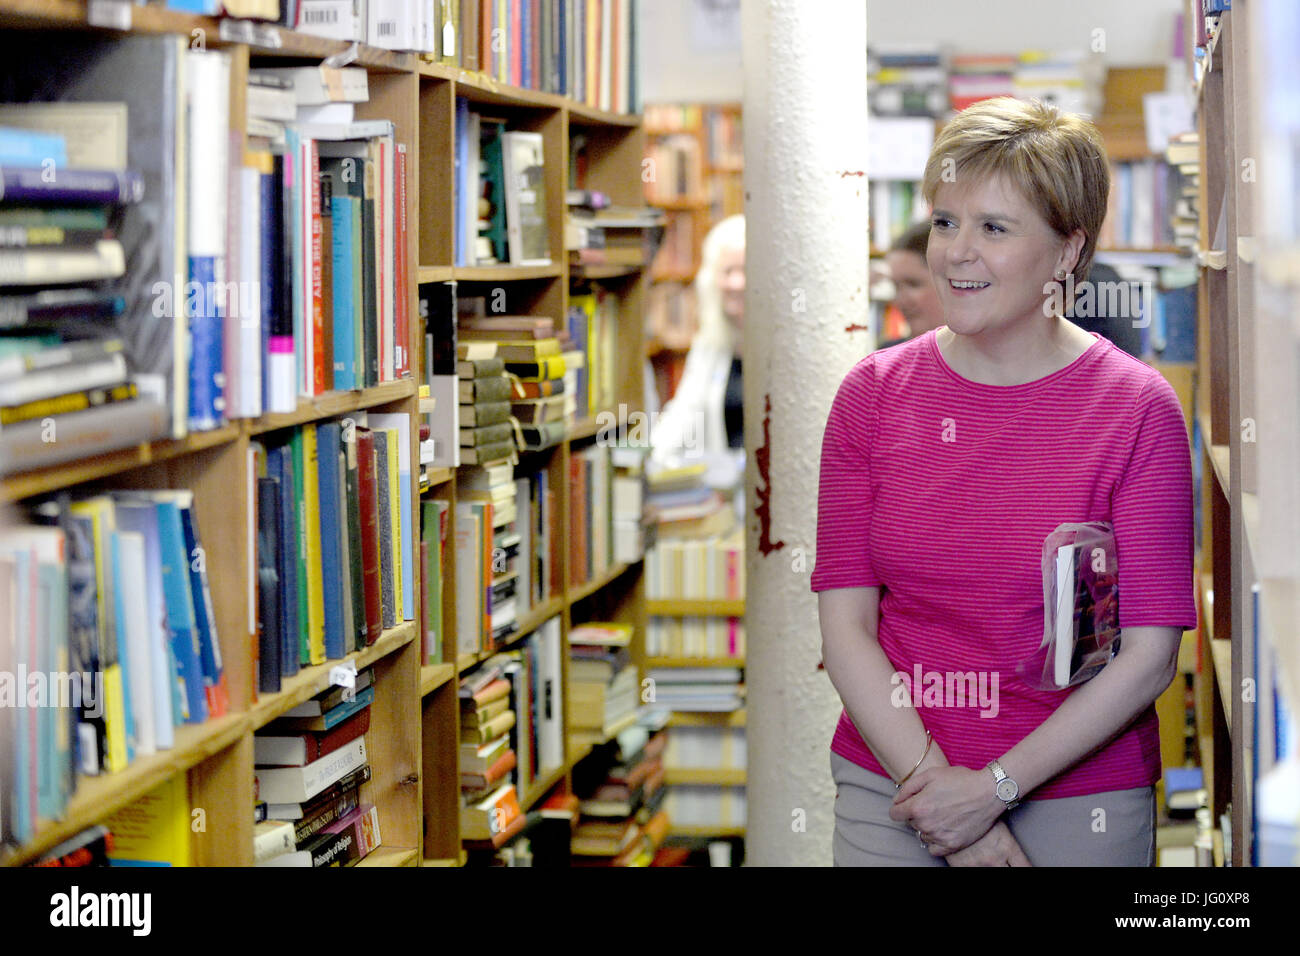 Scotland's First Minister Nicola Sturgeon and SNP candidate Mhairi Black browse a bookshop in Paisley.  Featuring: Stock Photo